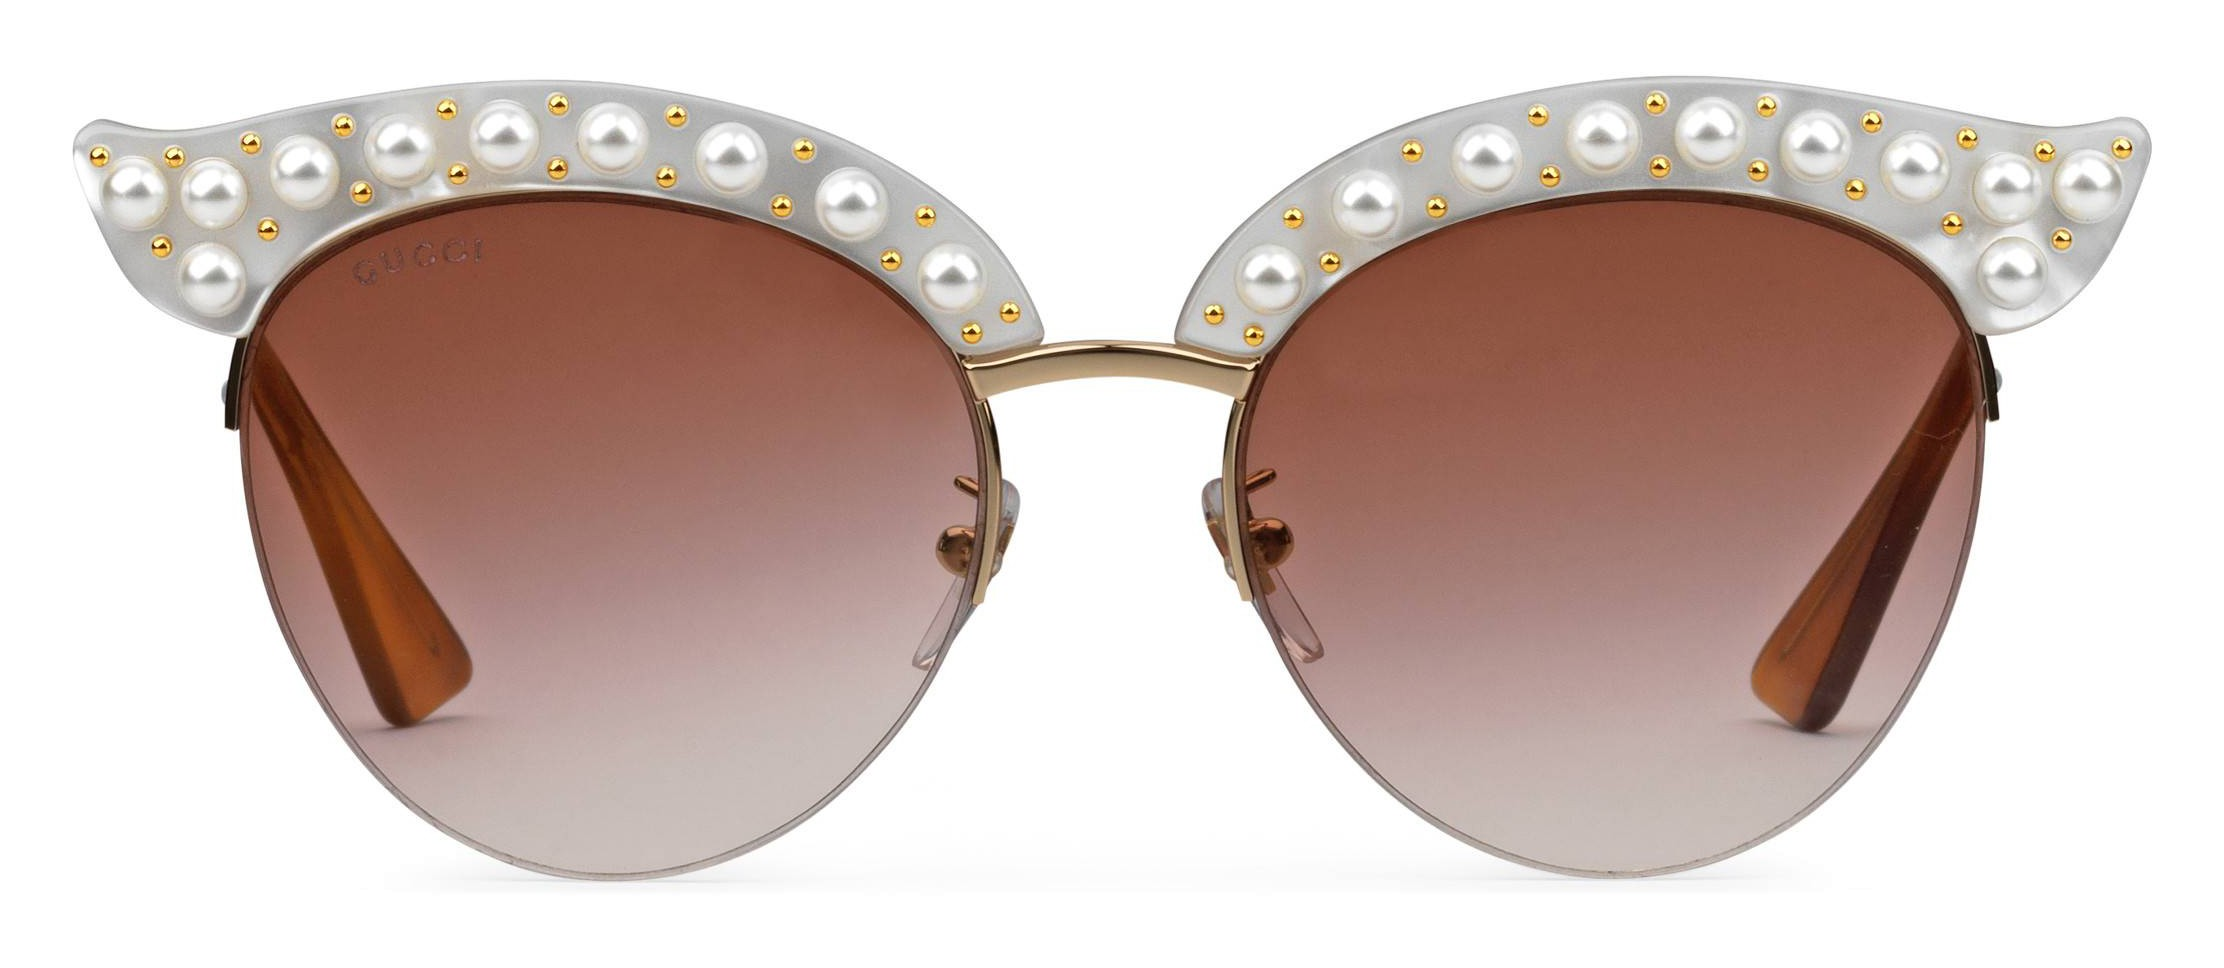 92a4490f79a Gucci - Cat Eye Acetate Sunglasses with Pearls - White Acetate - Gucci  Eyewear